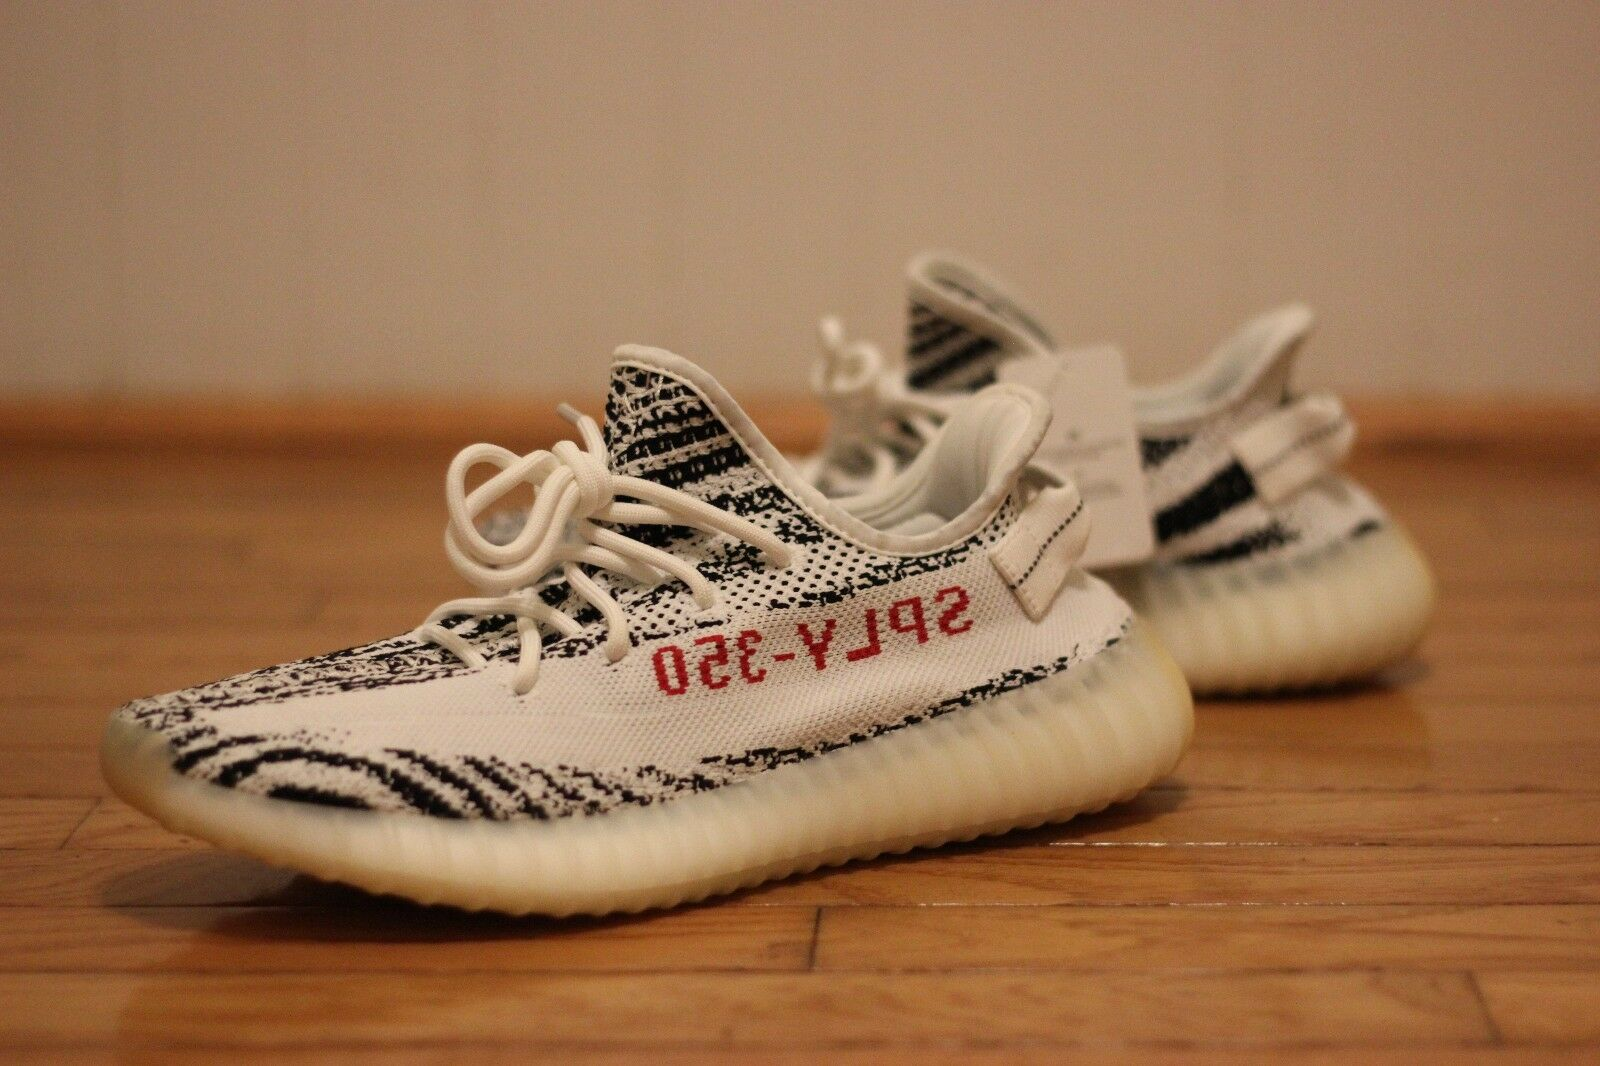 Adidas Yeezy Boost 350 V2 Zebra shoes CP9654 Size 10